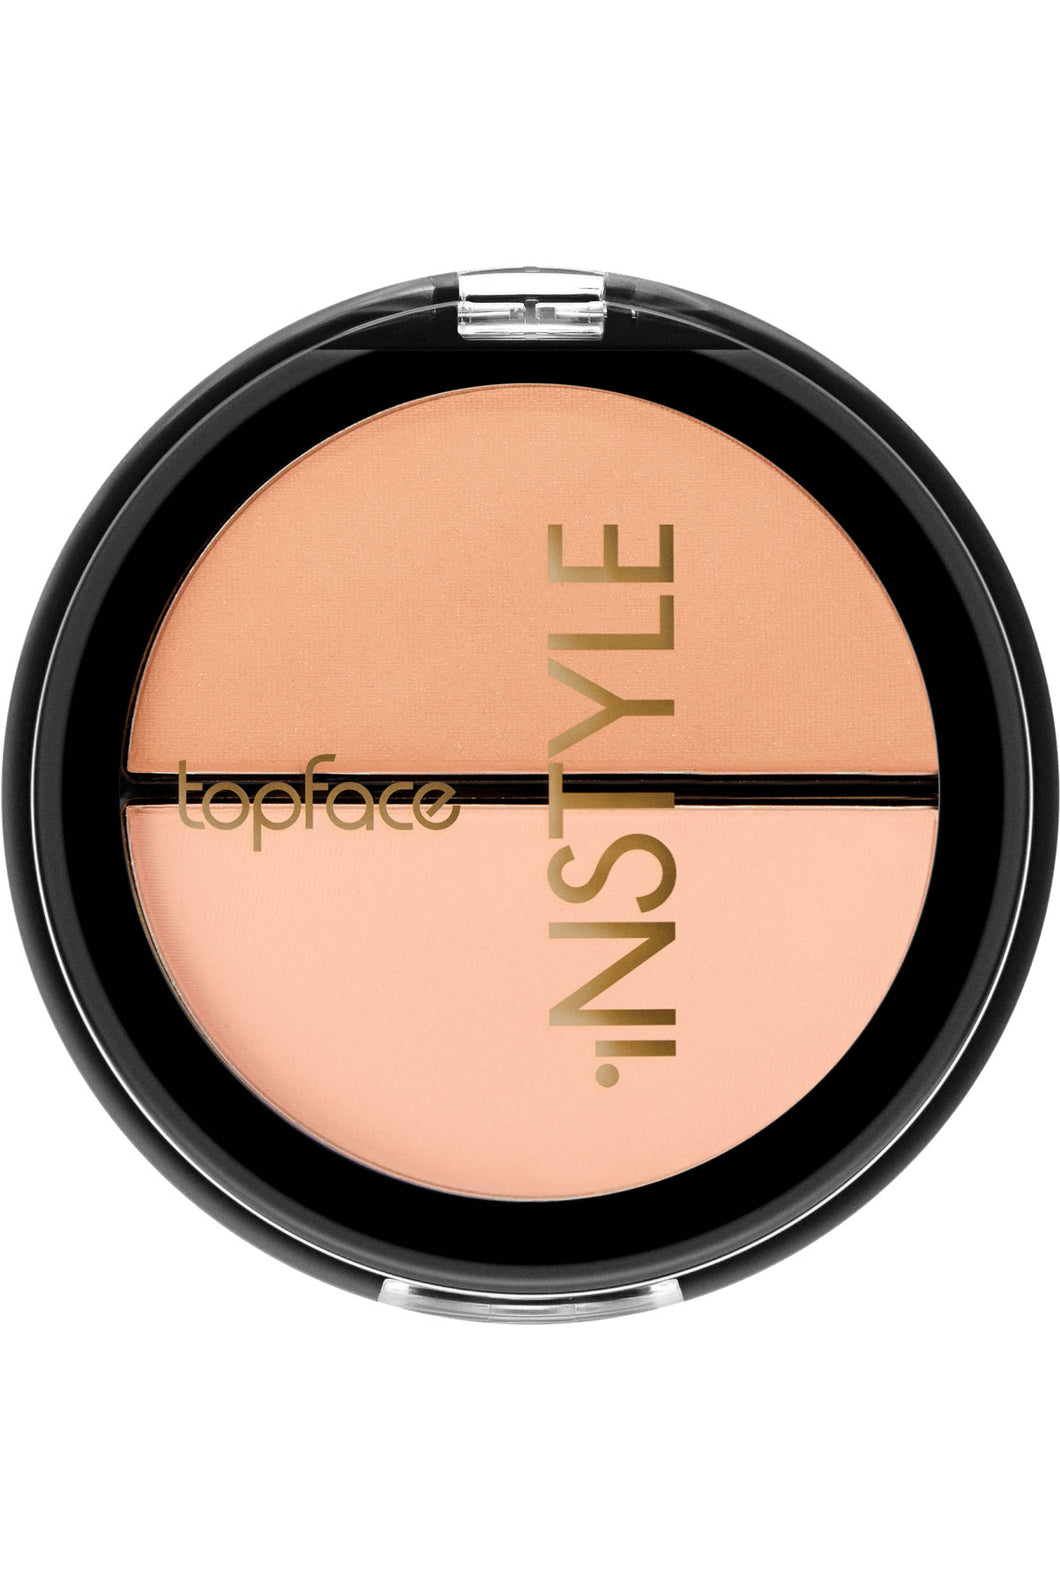 Topface - Instyle Twin Blush On - 005